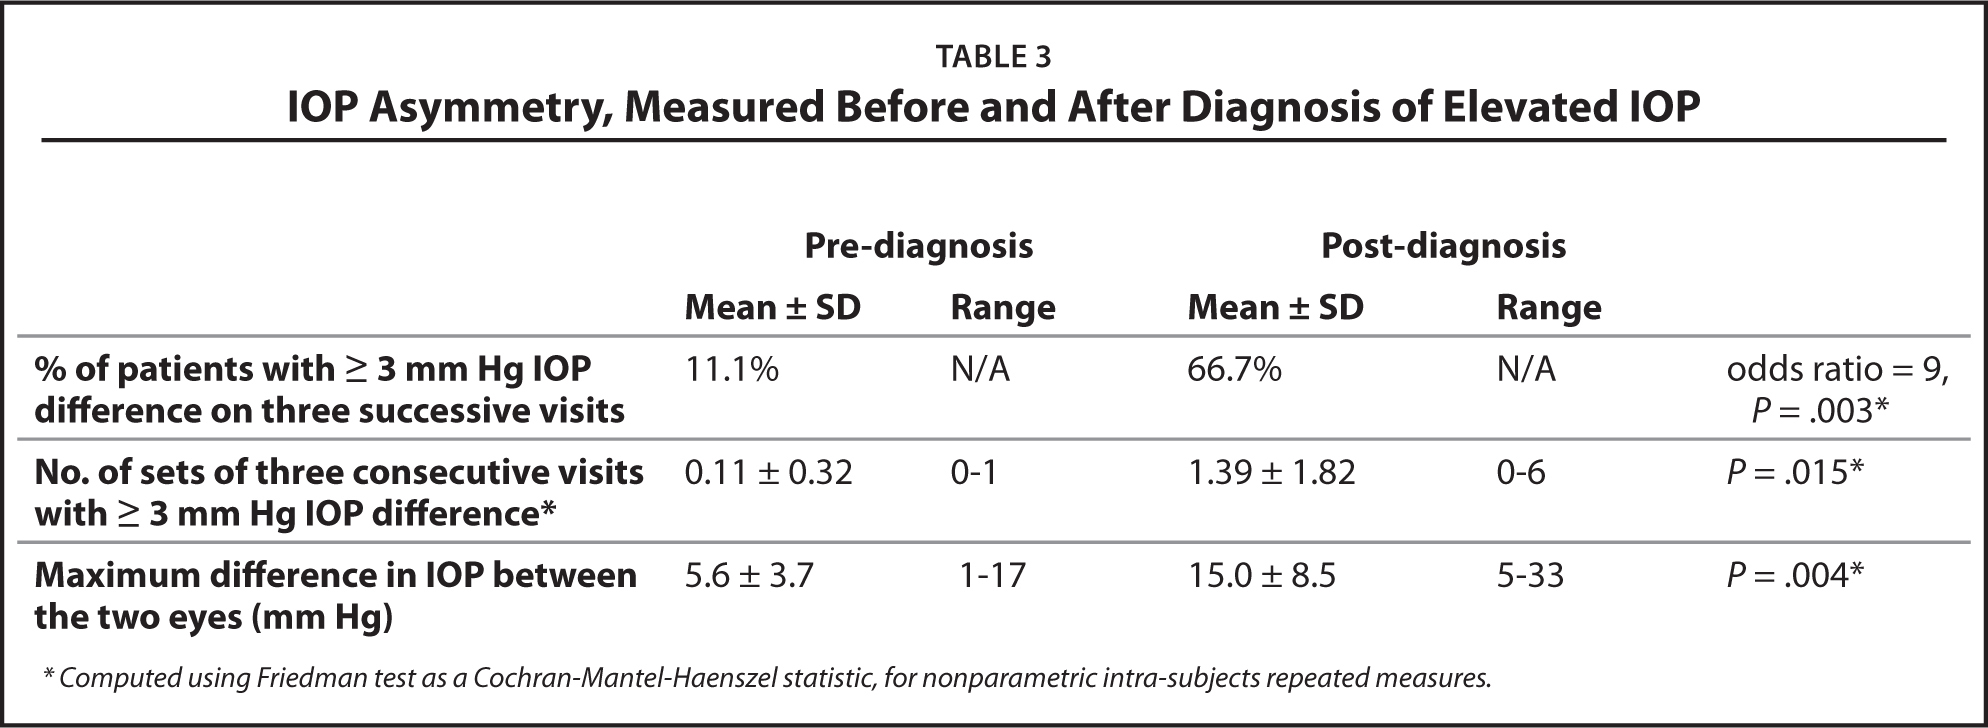 IOP Asymmetry, Measured Before and After Diagnosis of Elevated IOP